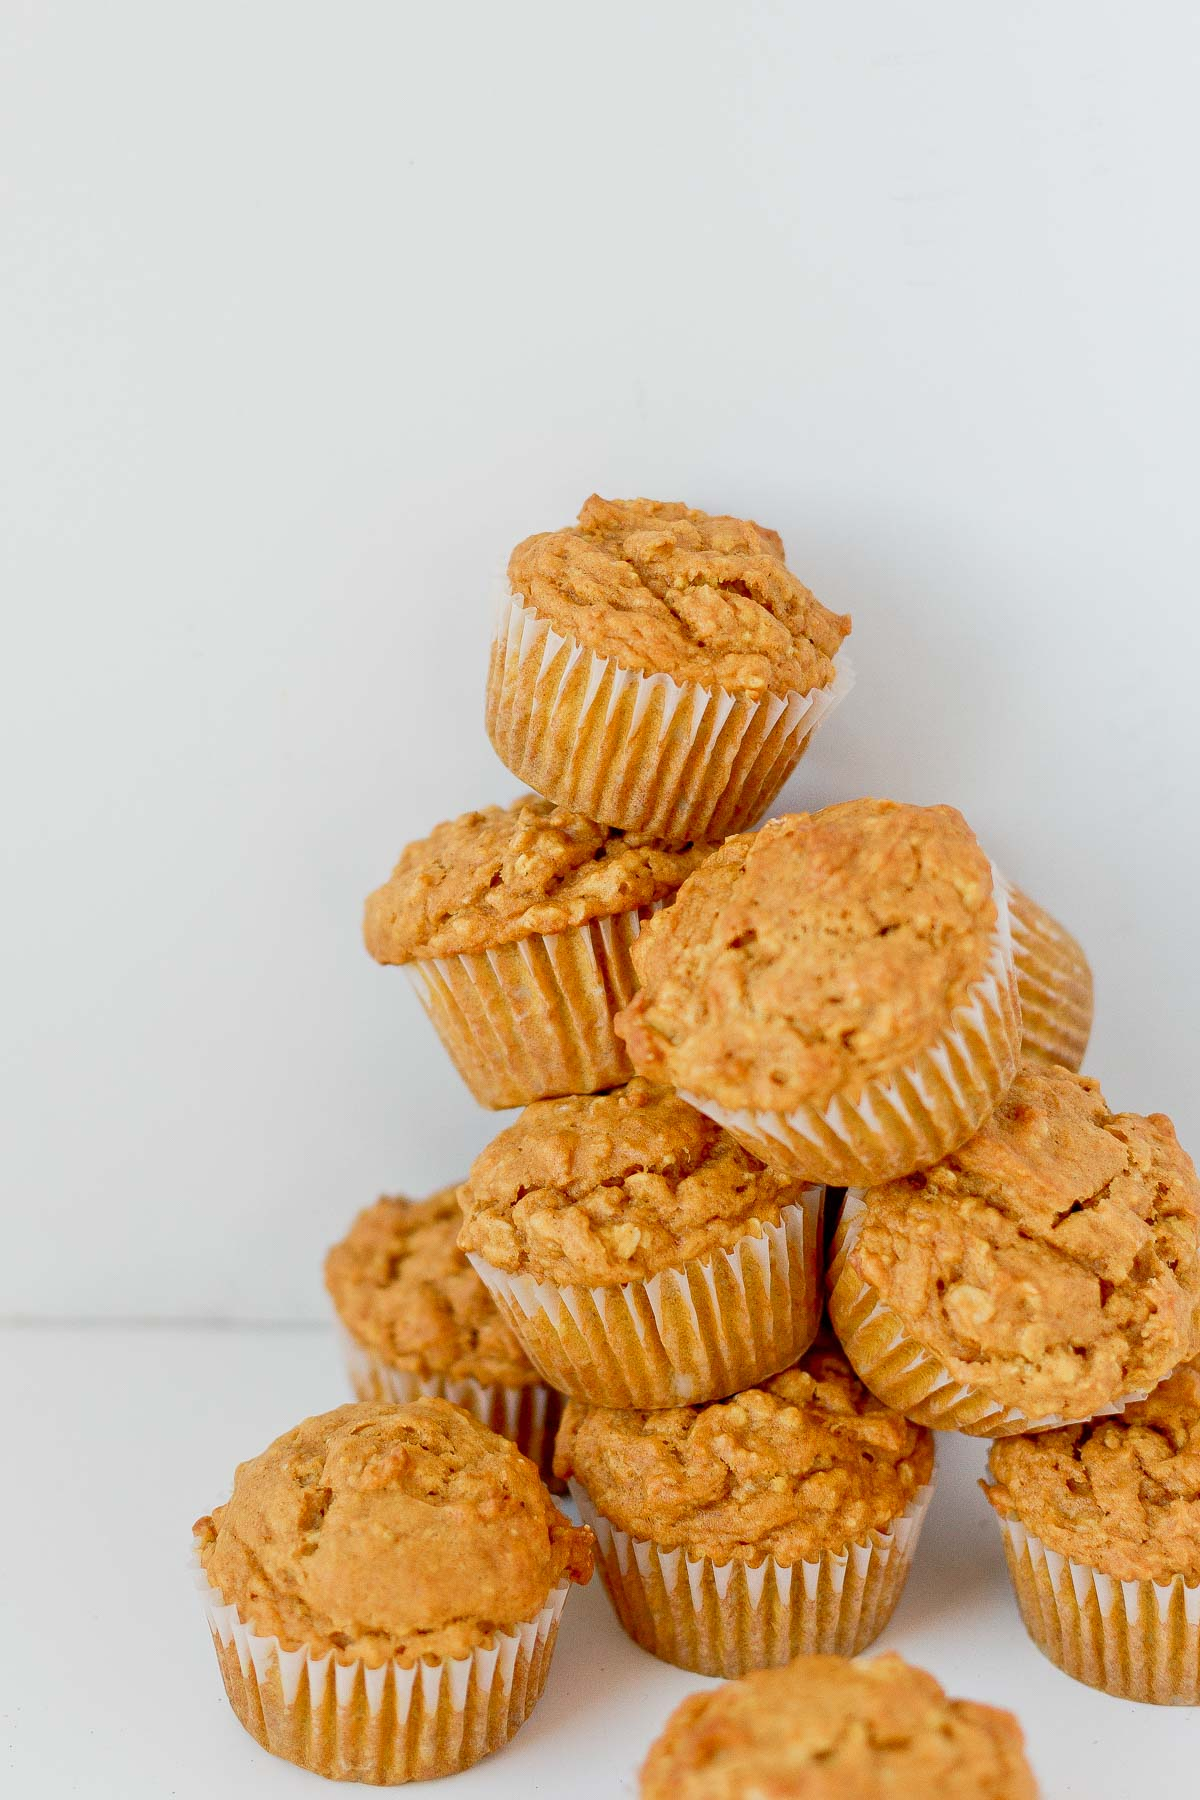 Pumpkin oat muffins stacked on top of each other.